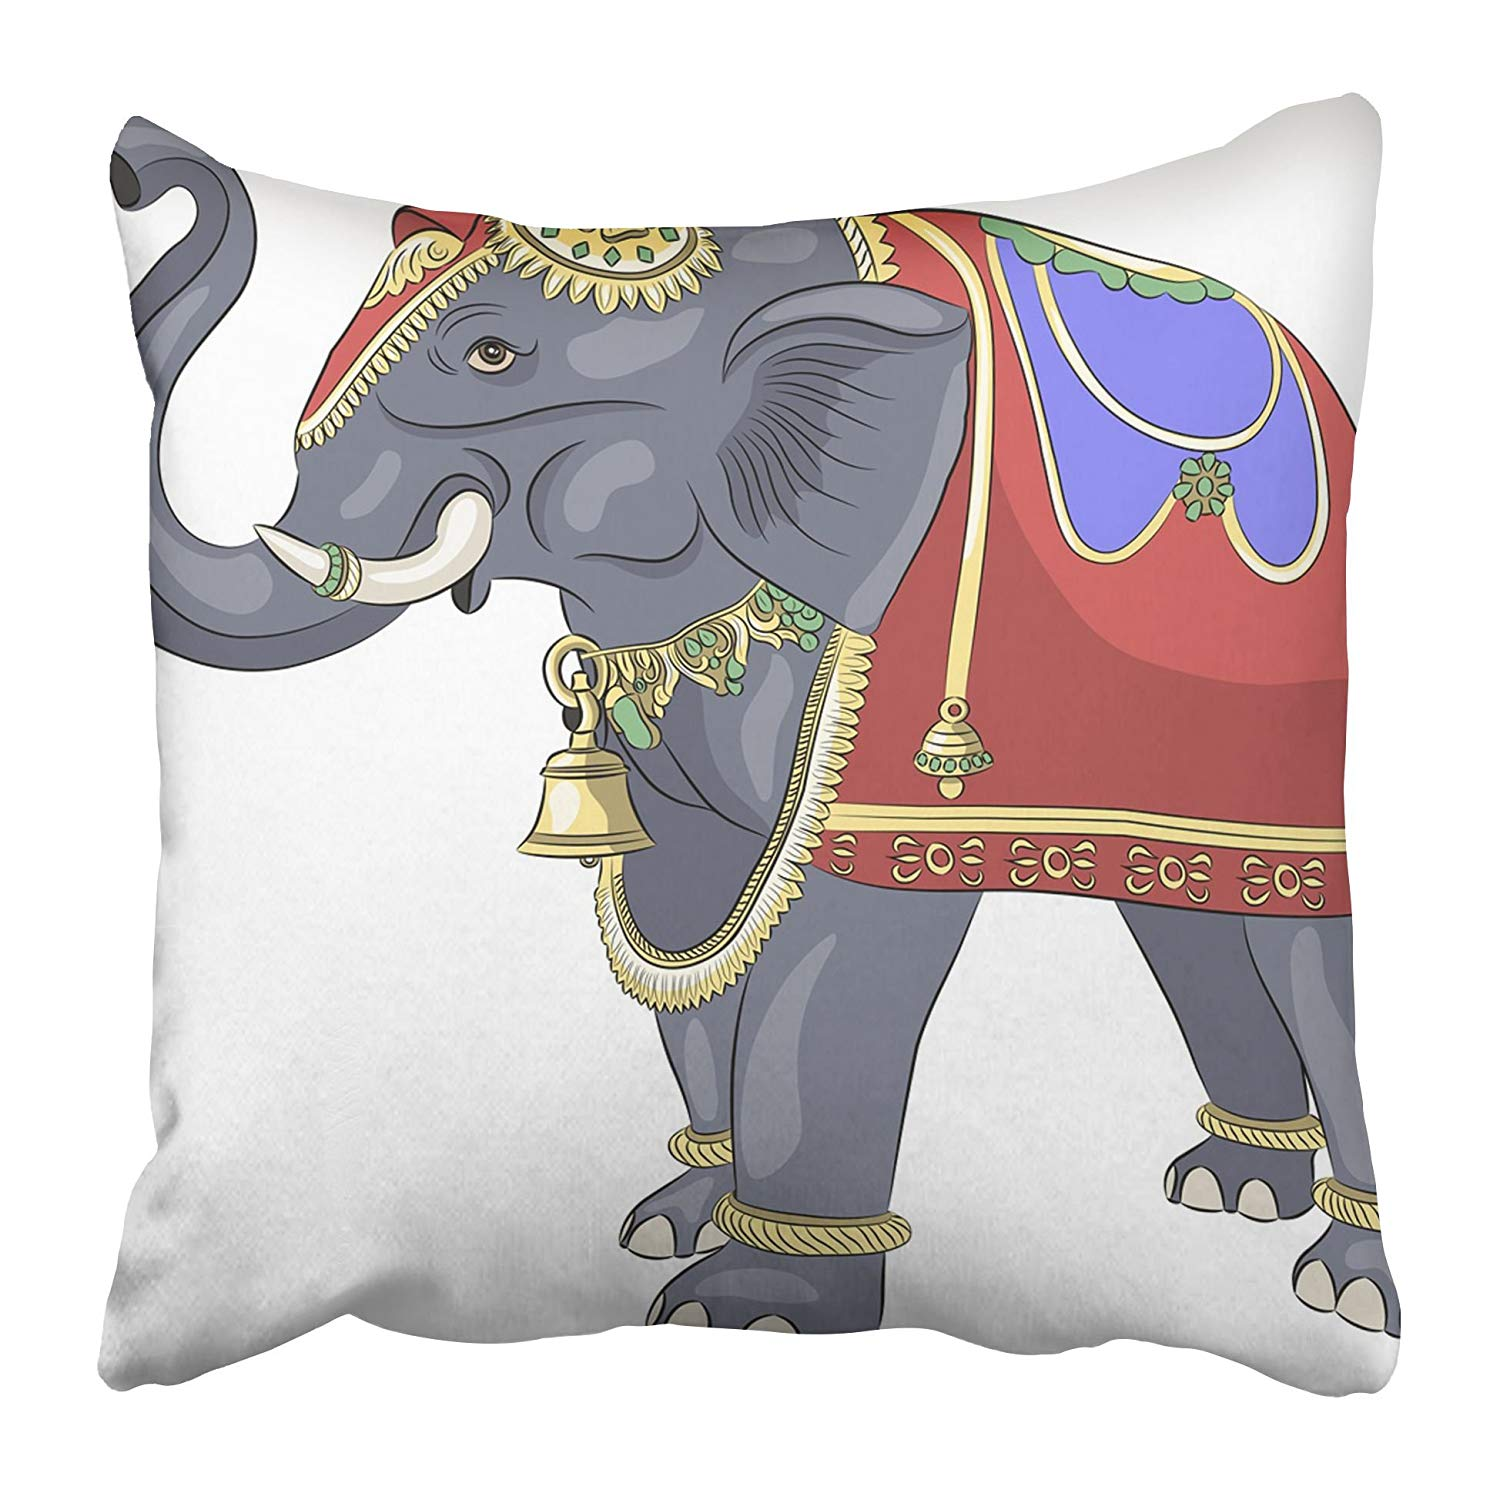 USART Gray Animals Decorated Bridal Elephant Asian Color Culture Gold Heavy Holy Pillow Case Cushion Cover 20x20 inch